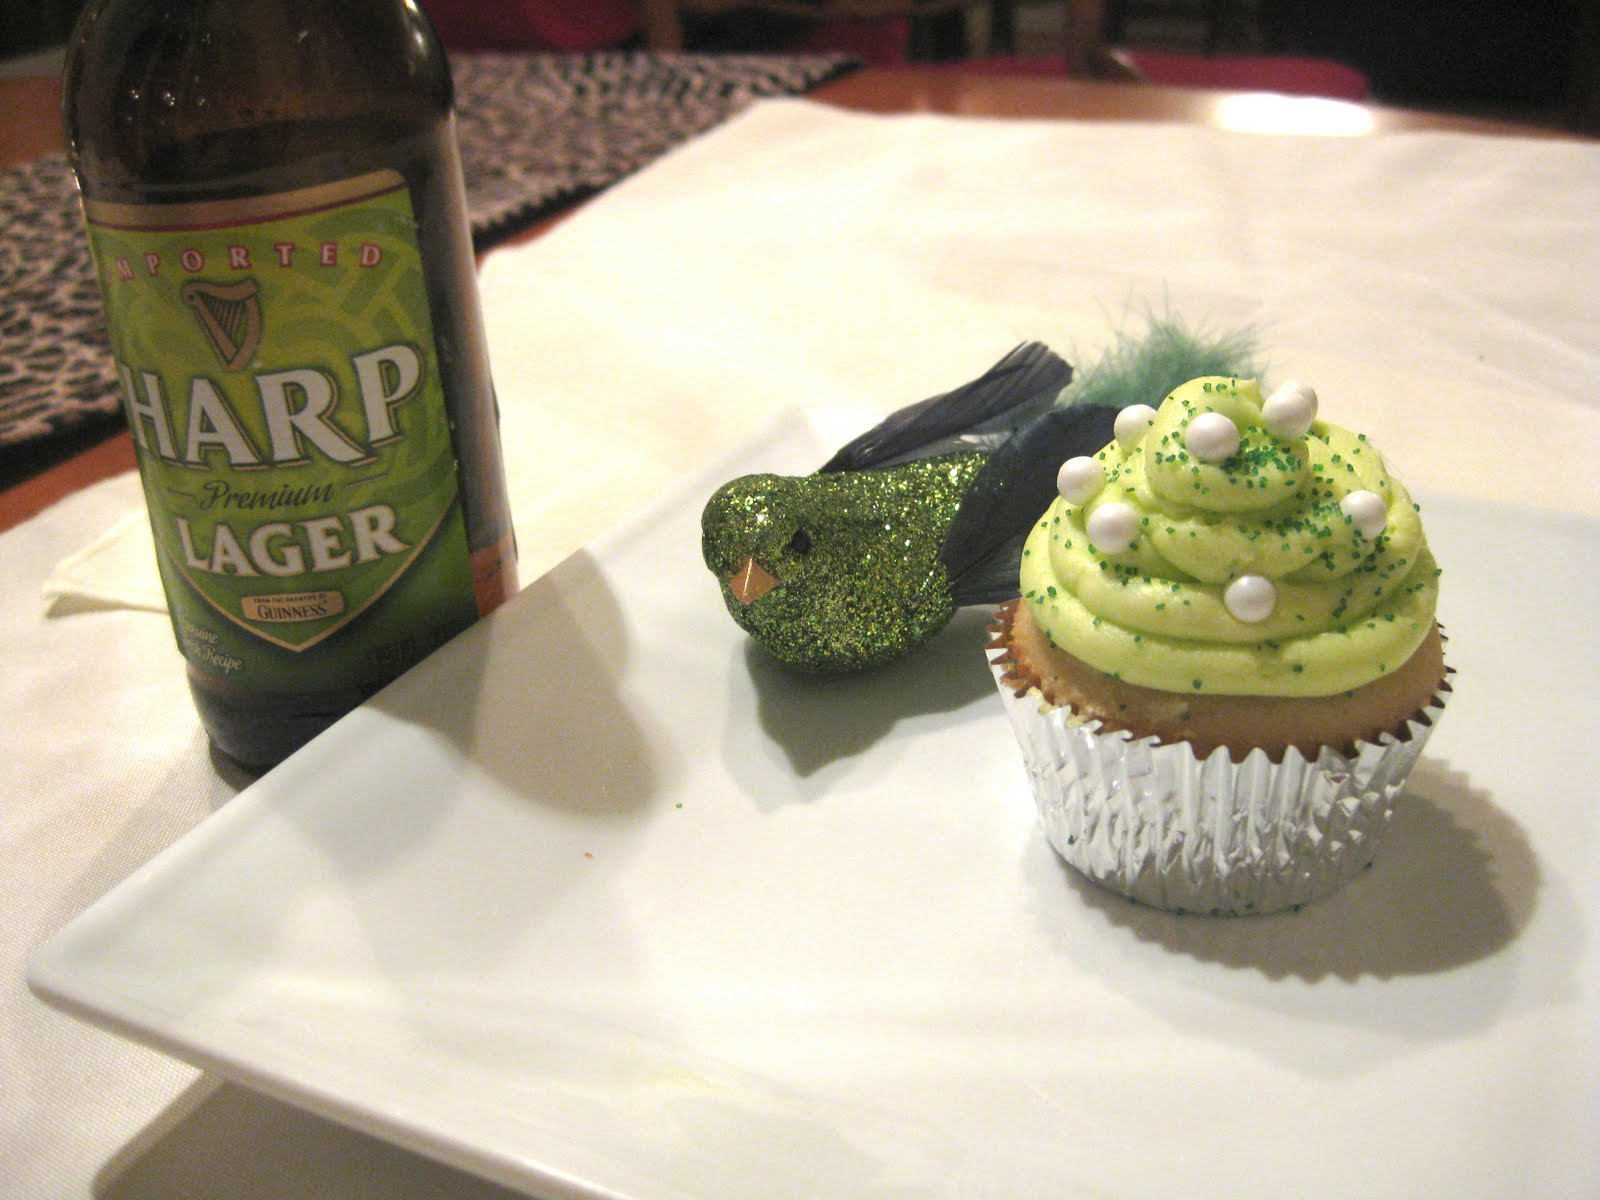 """Pixie Crust: """"Snake Bite"""" Cupcake with Harp and Wyder's ..."""